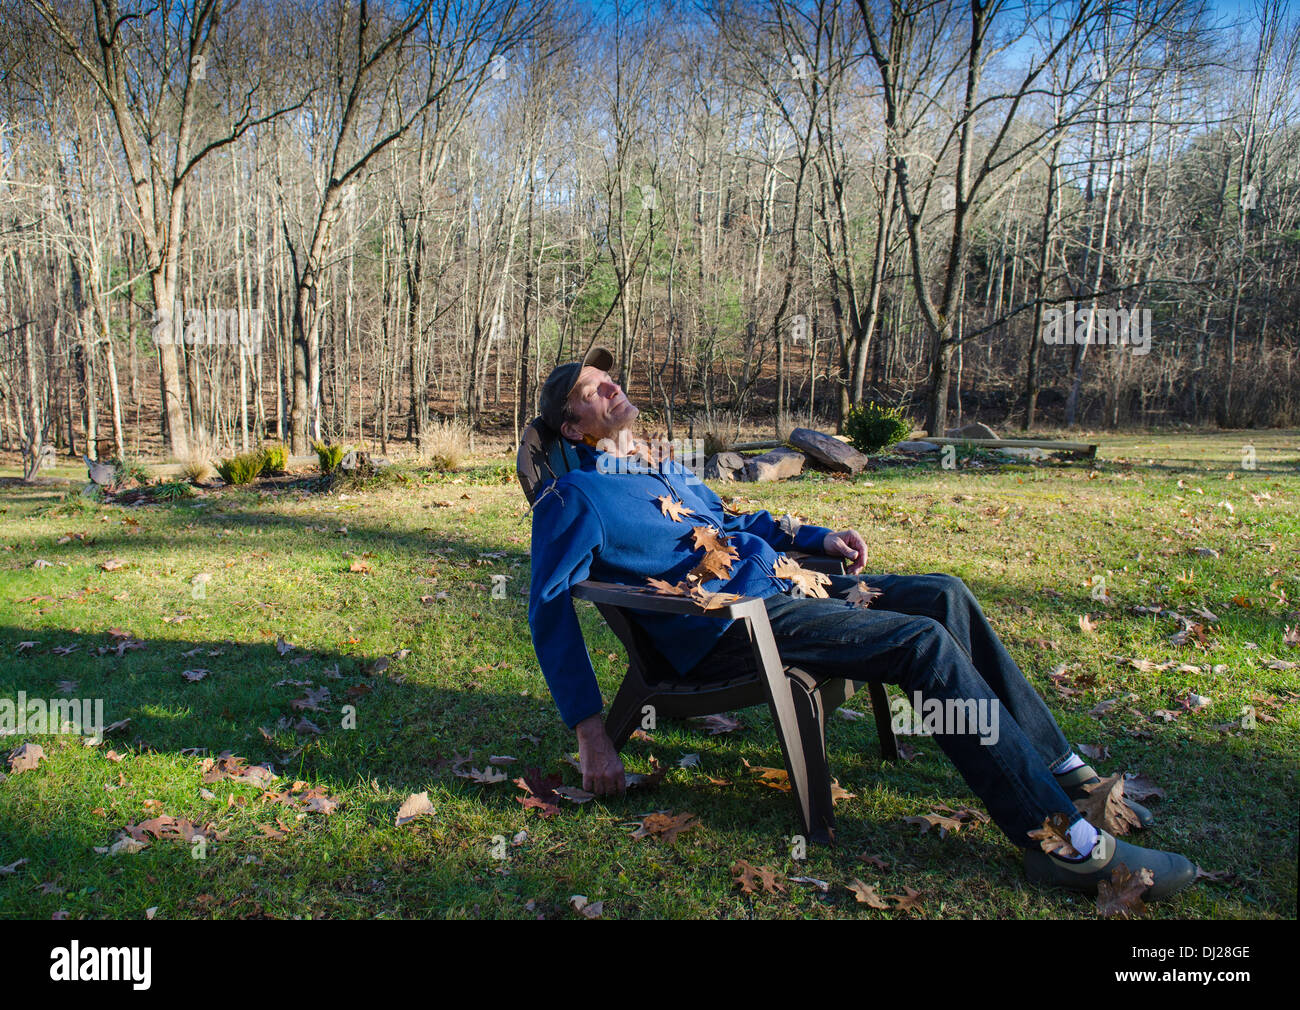 man smiling on lawn chair covered with leaves - Stock Image